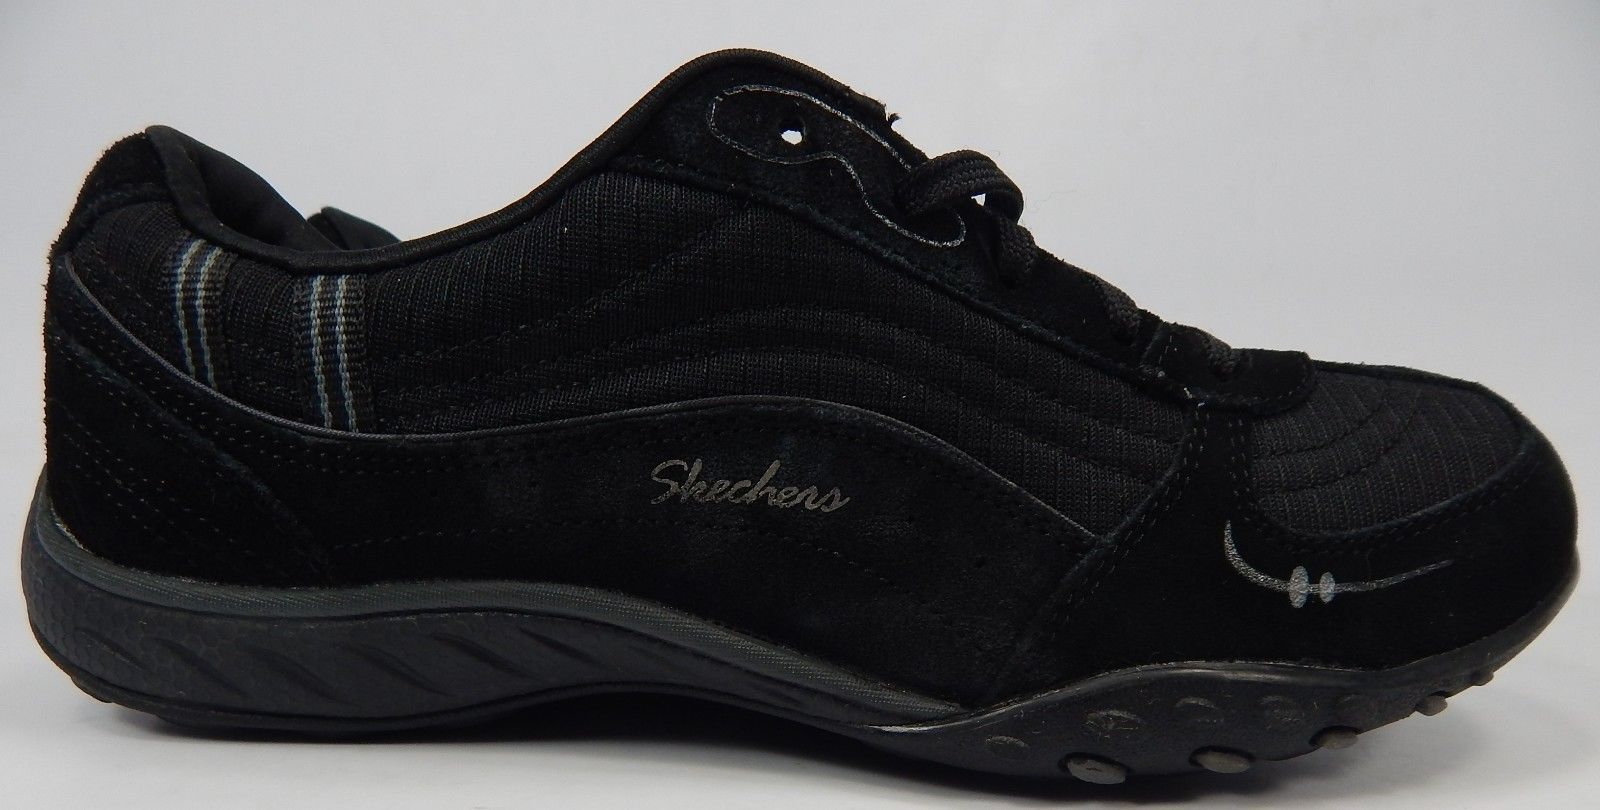 Skechers Relaxed Fit Breathe Easy Just Relax Sz: 8.5 M (B) EU 38.5 Women's Shoes